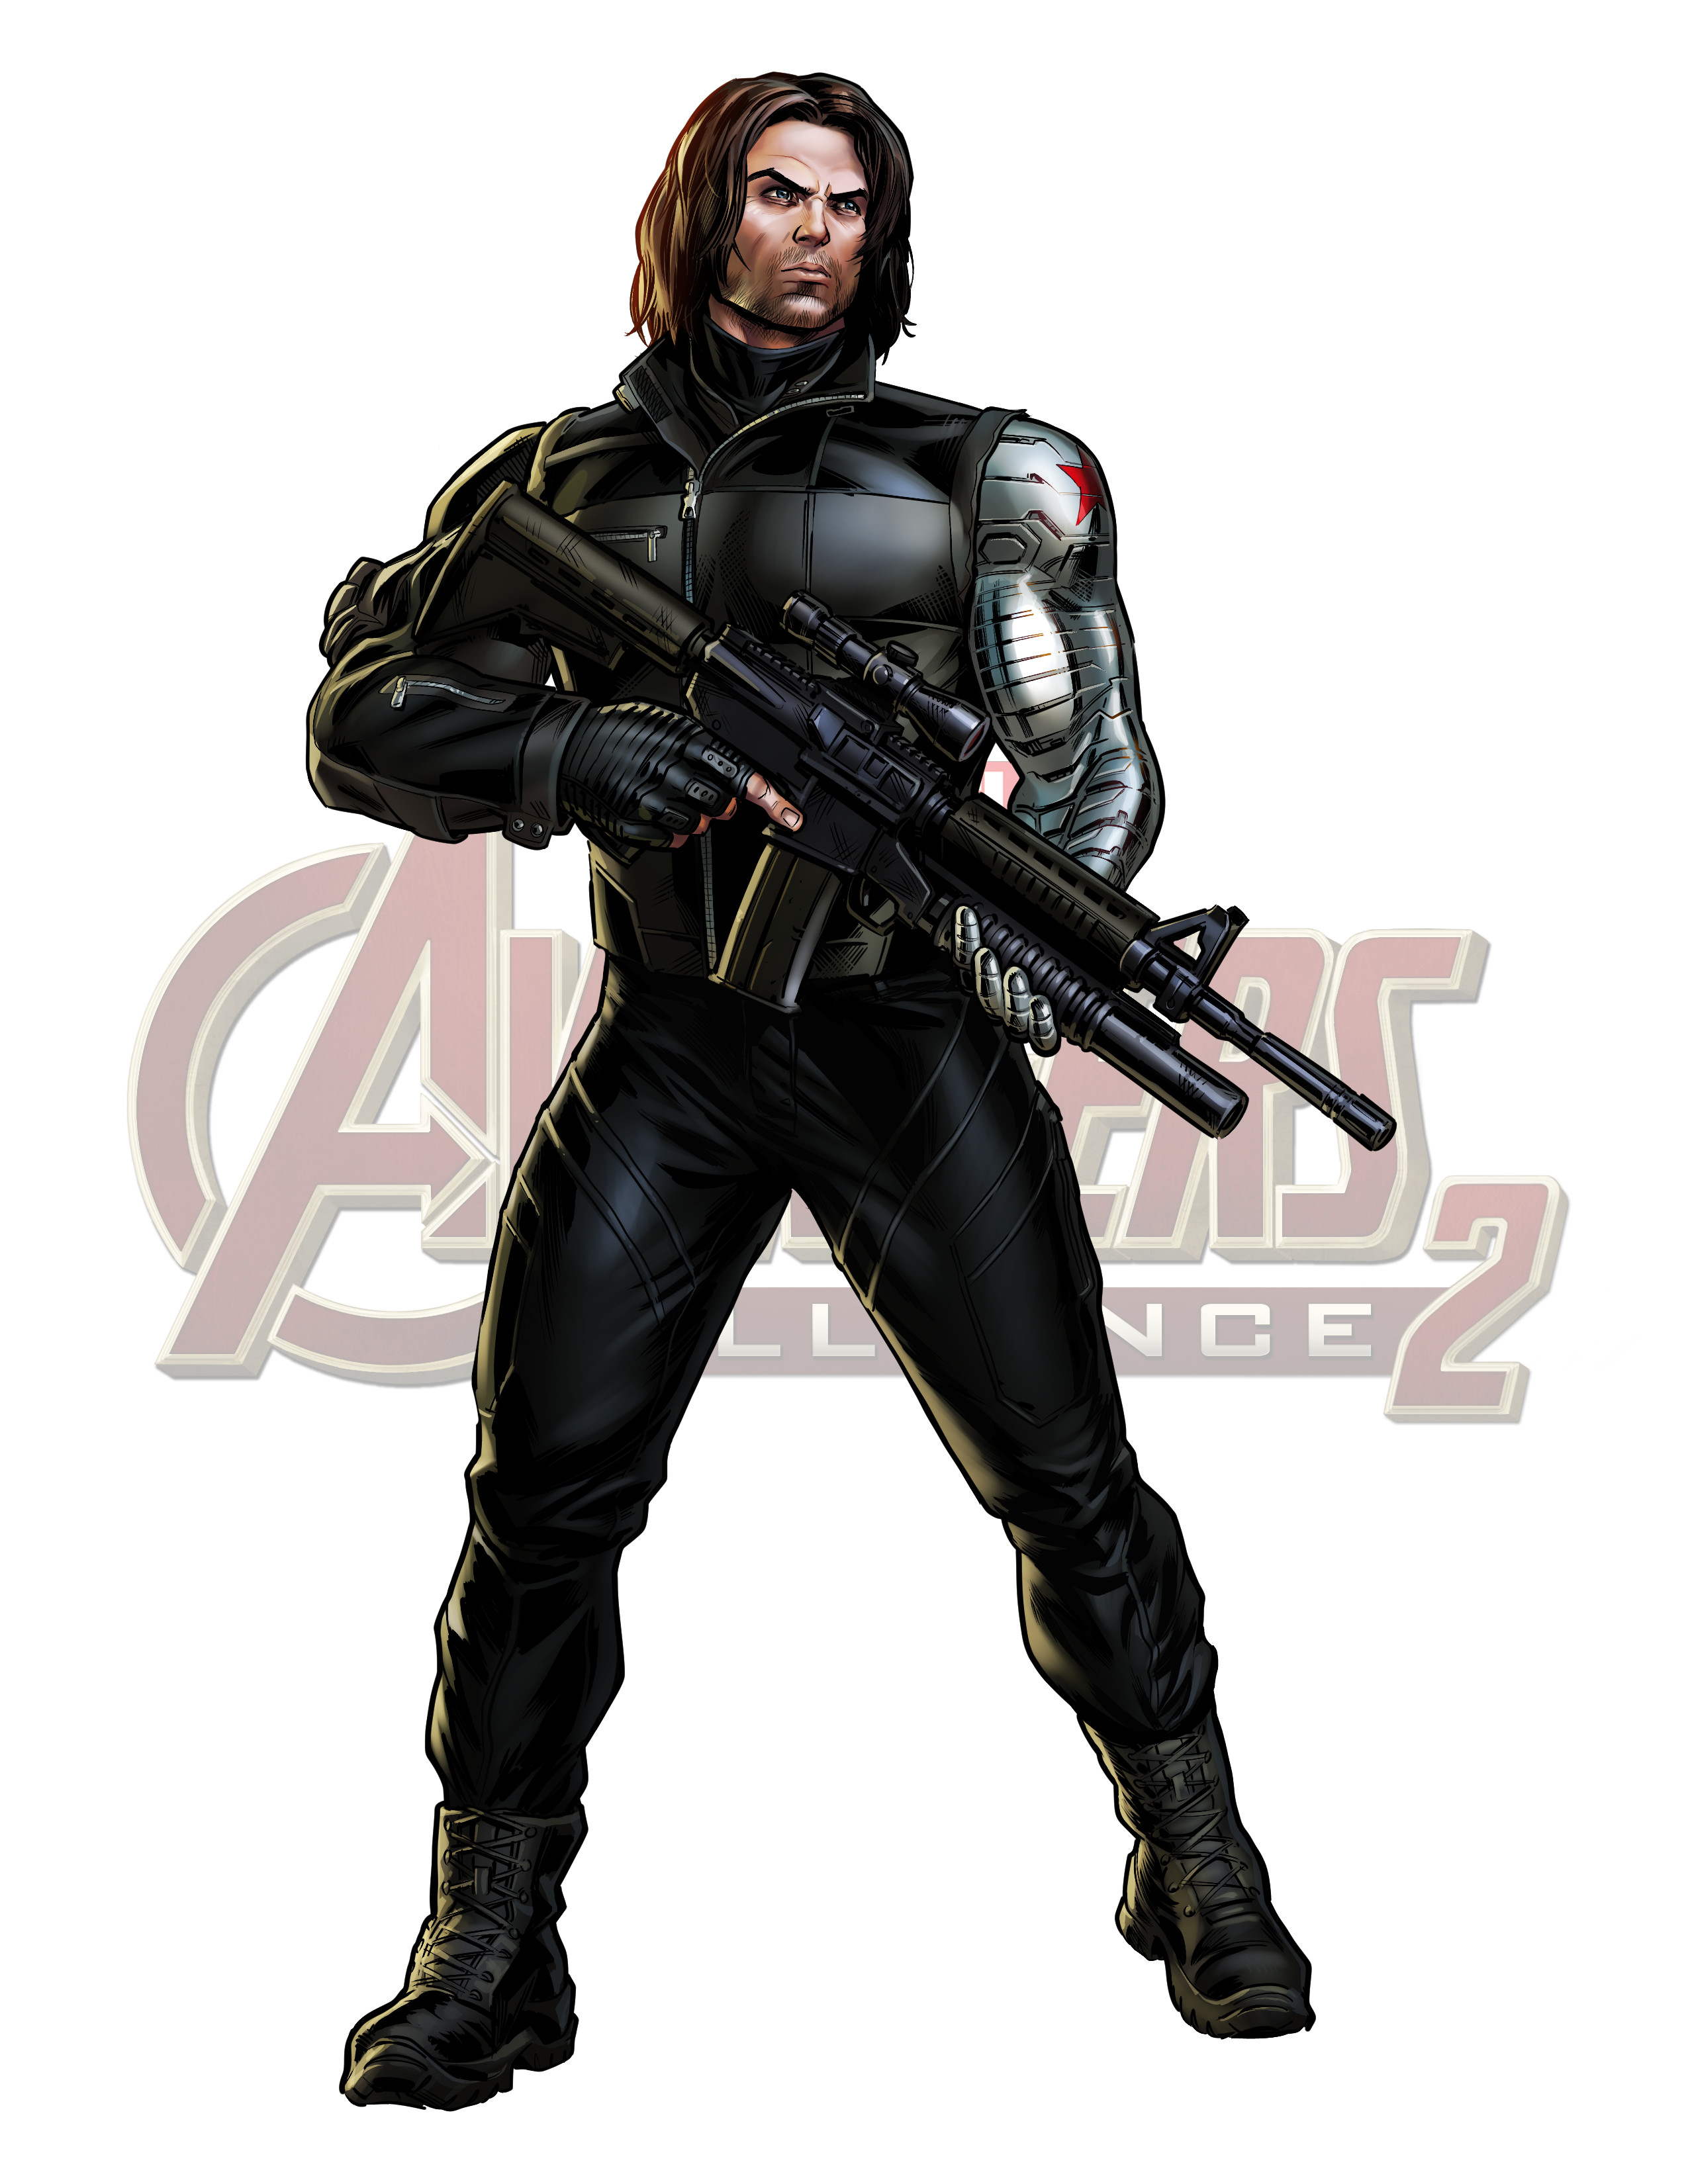 Maa2 Winter Soldier Cw Logo Png 2550 3300 Avengers Alliance Marvel Avengers Alliance Marvel Vs Dc